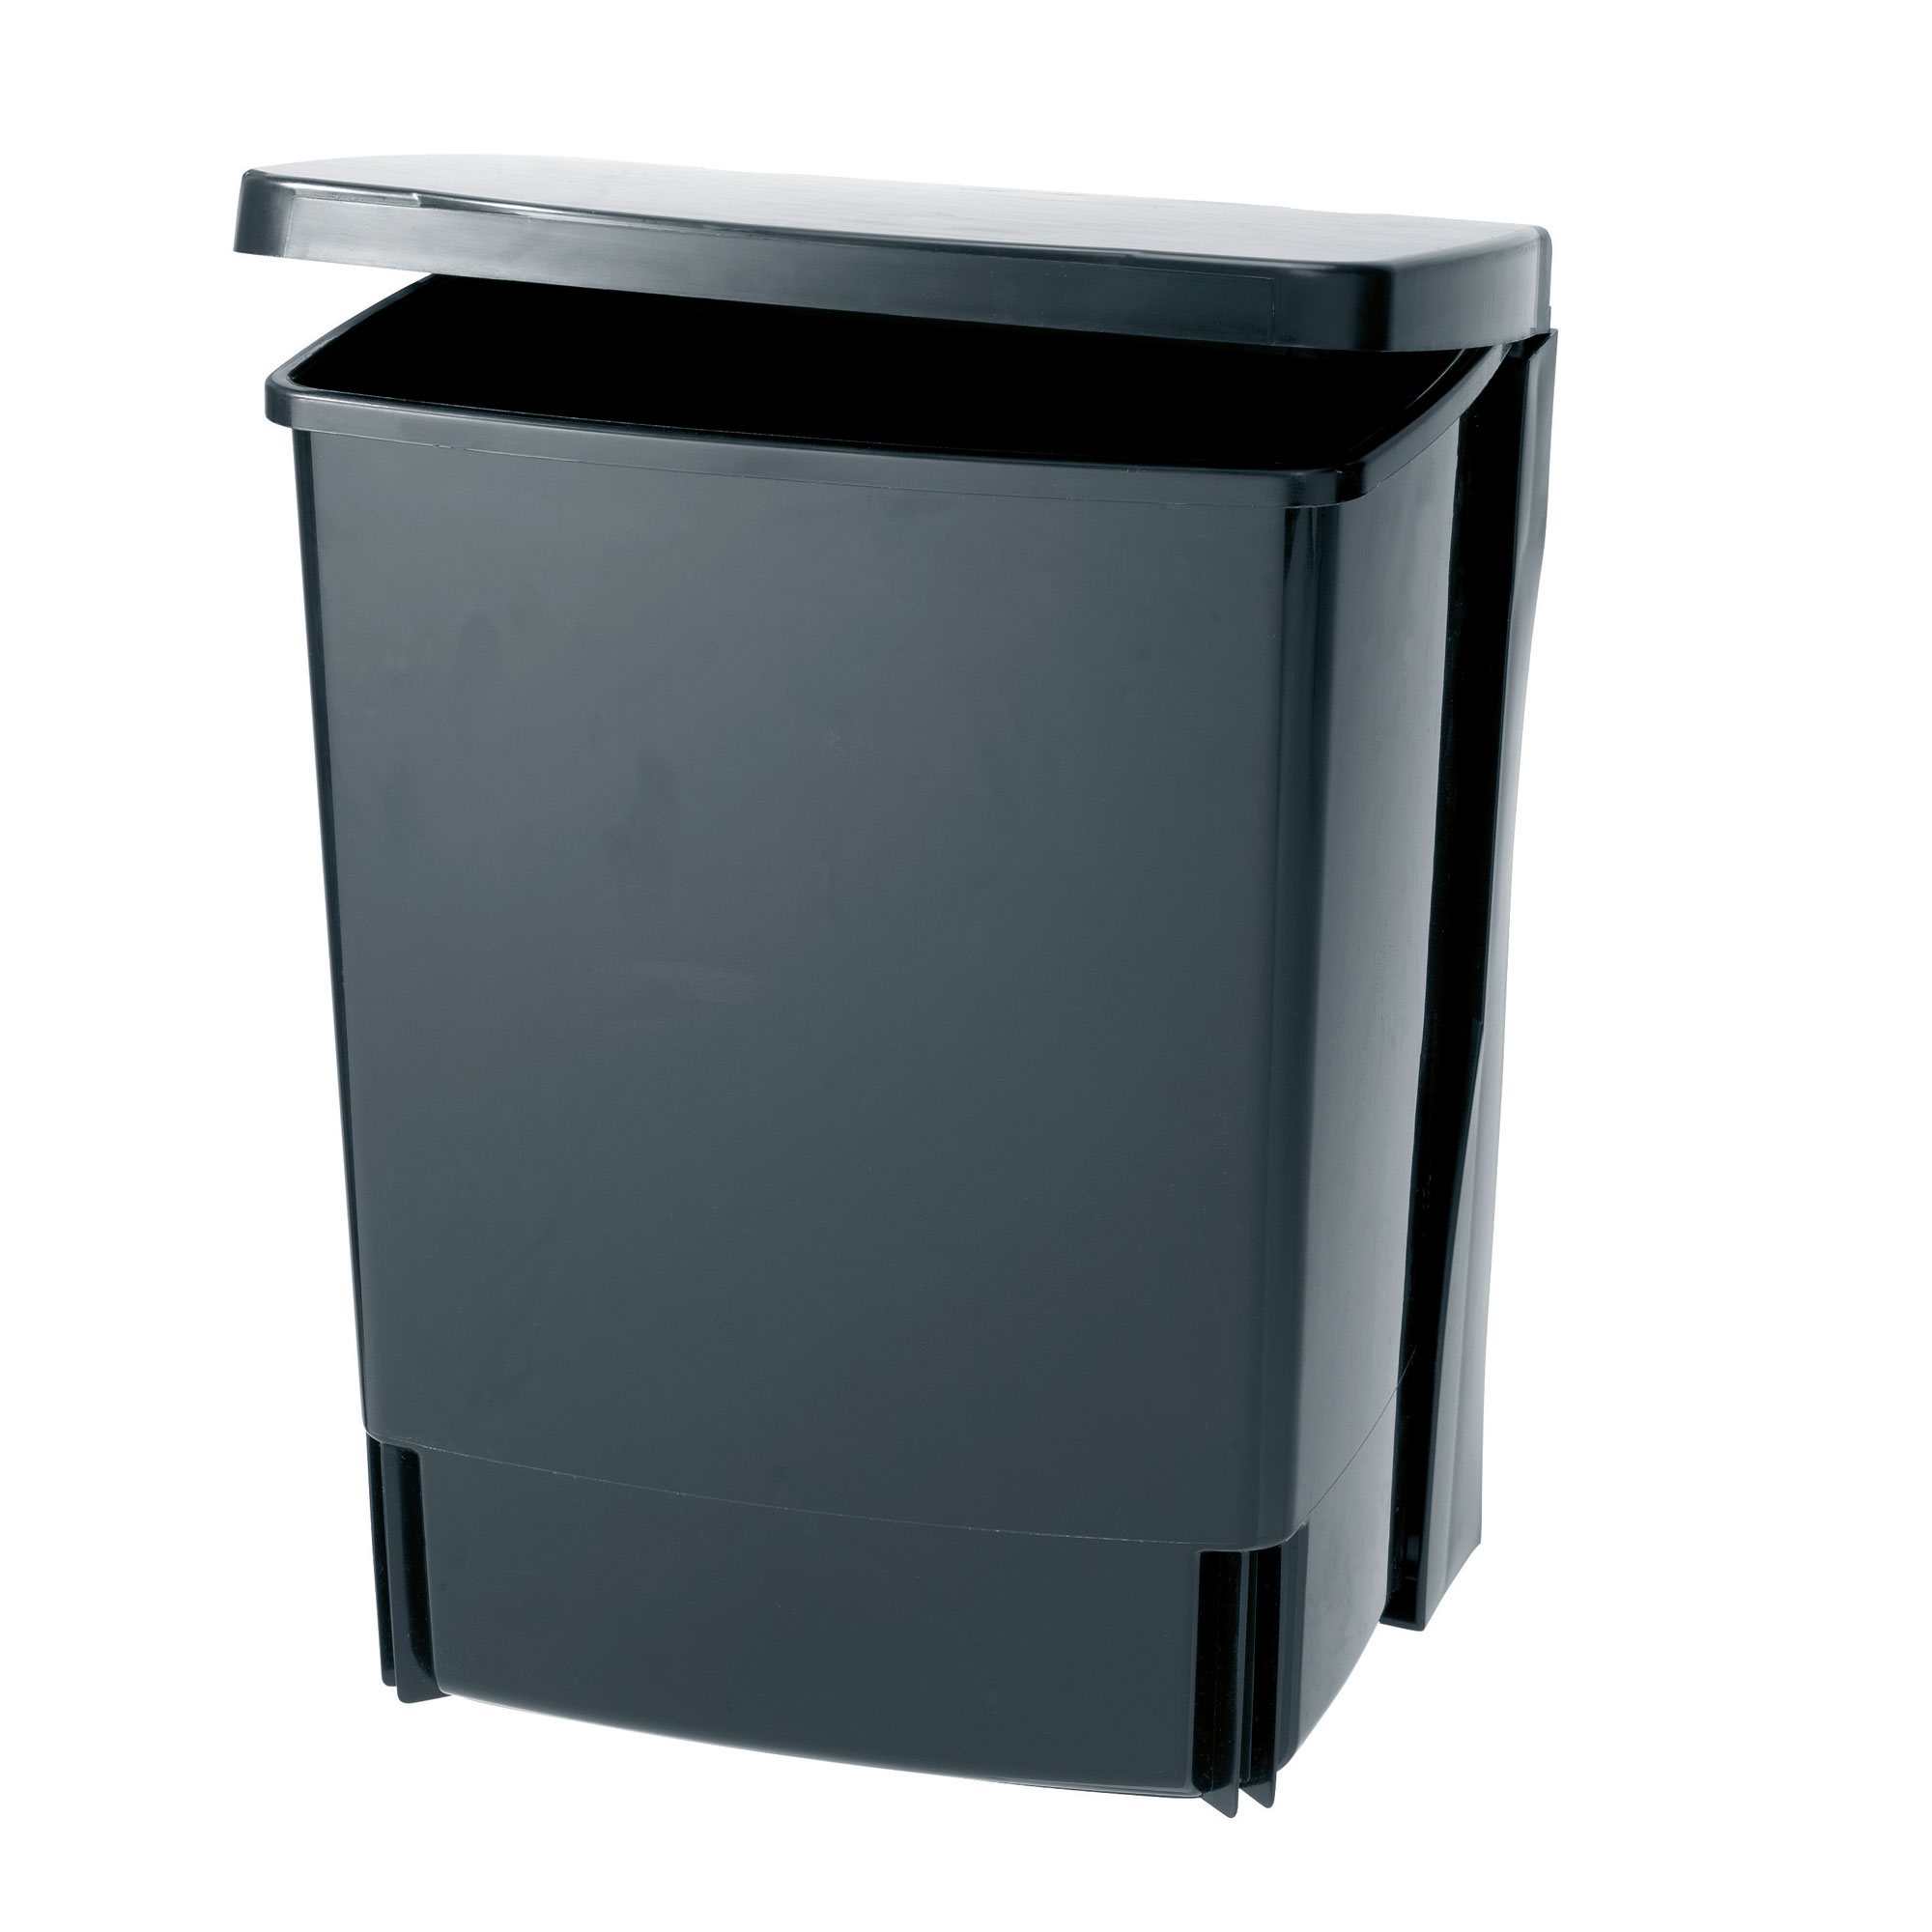 brabantia poubelle en plastique 10 l comparer avec. Black Bedroom Furniture Sets. Home Design Ideas